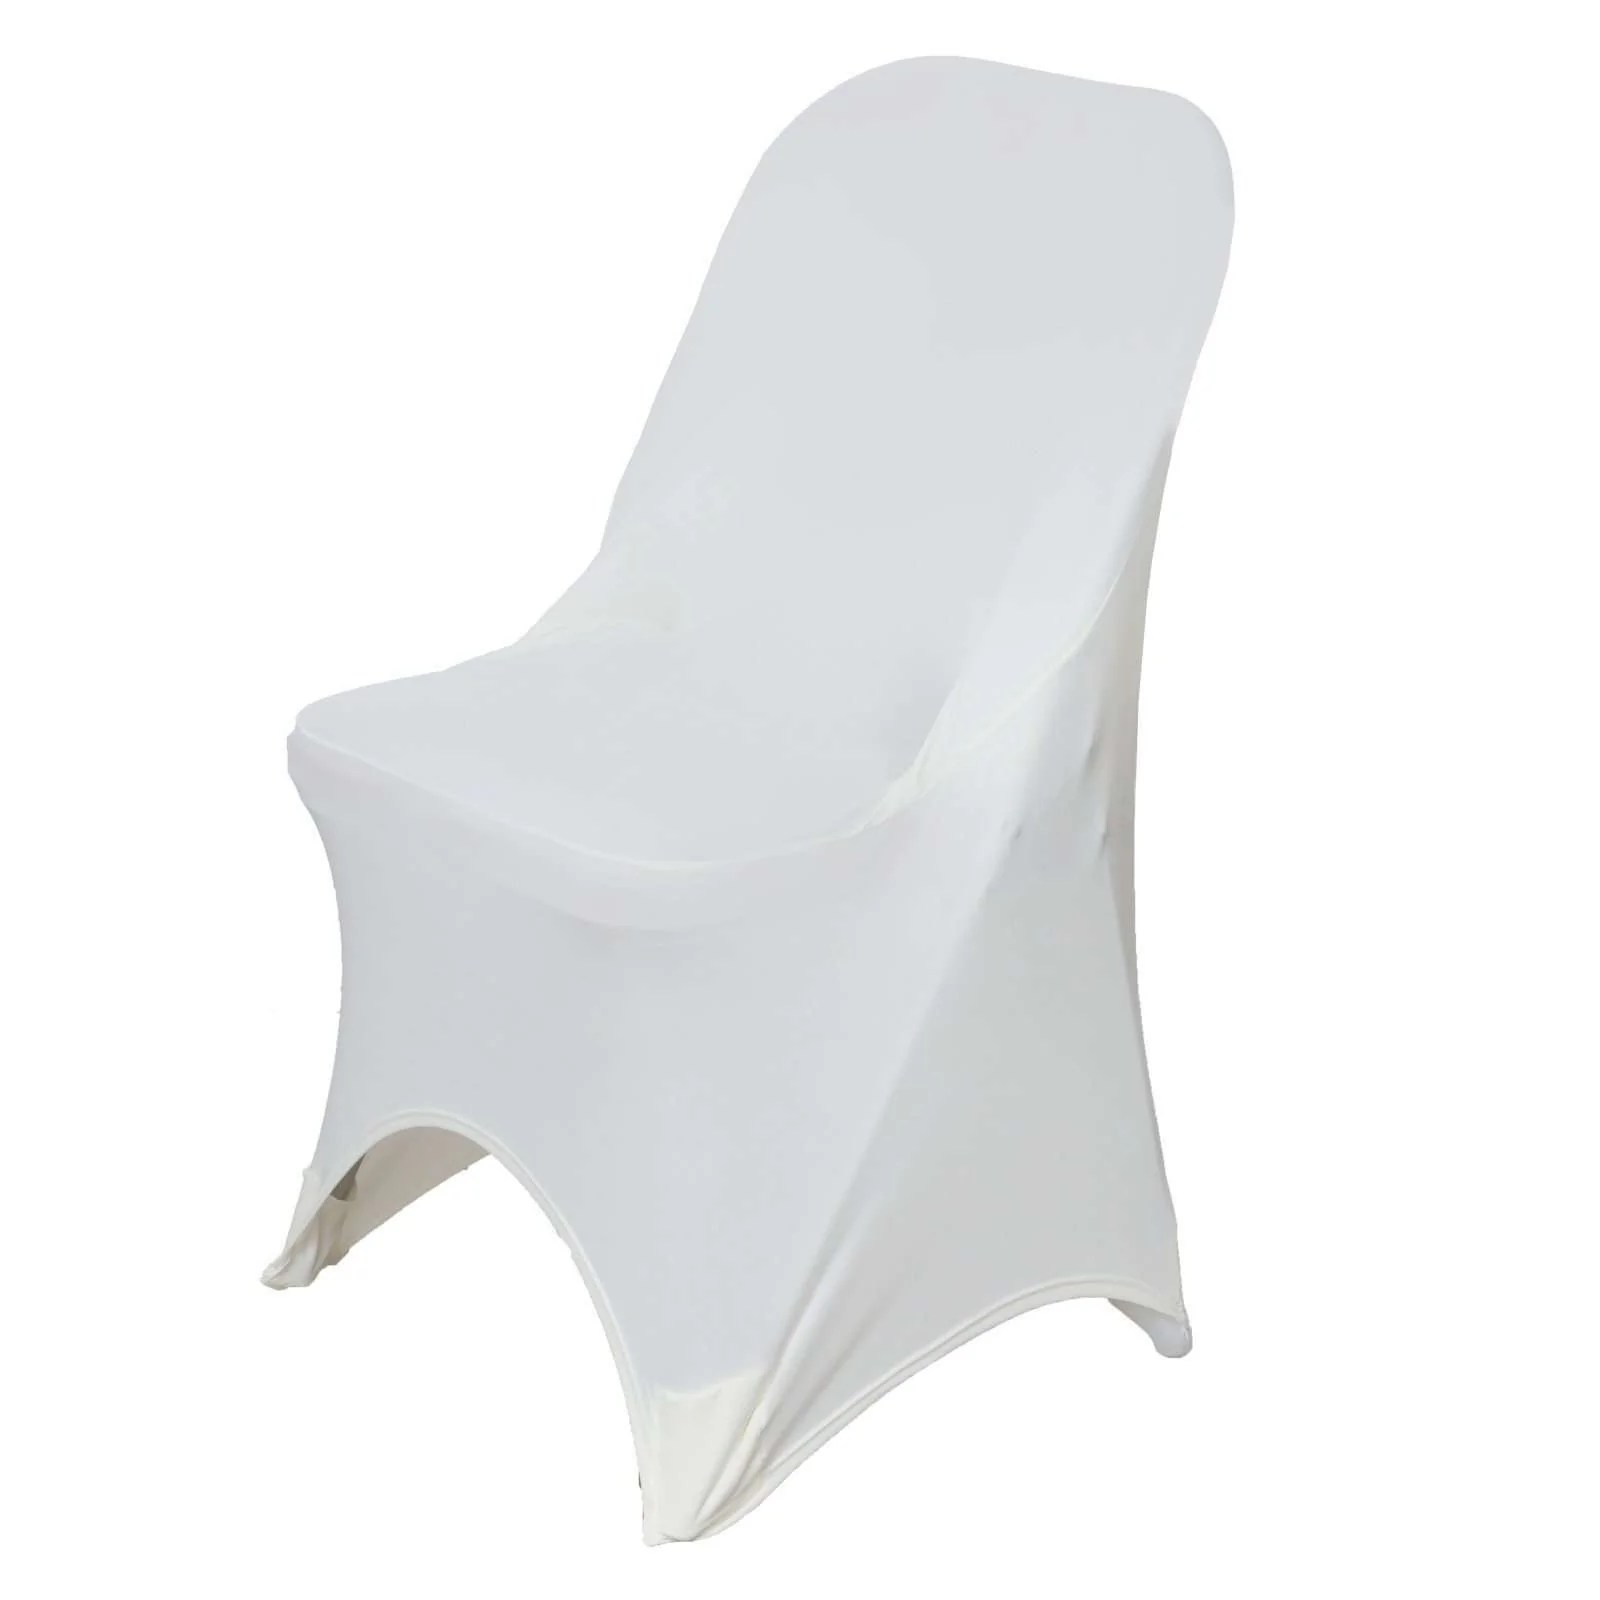 wholesale folding chair covers for sale comfy arm ivory spandex stretch cover wedding party